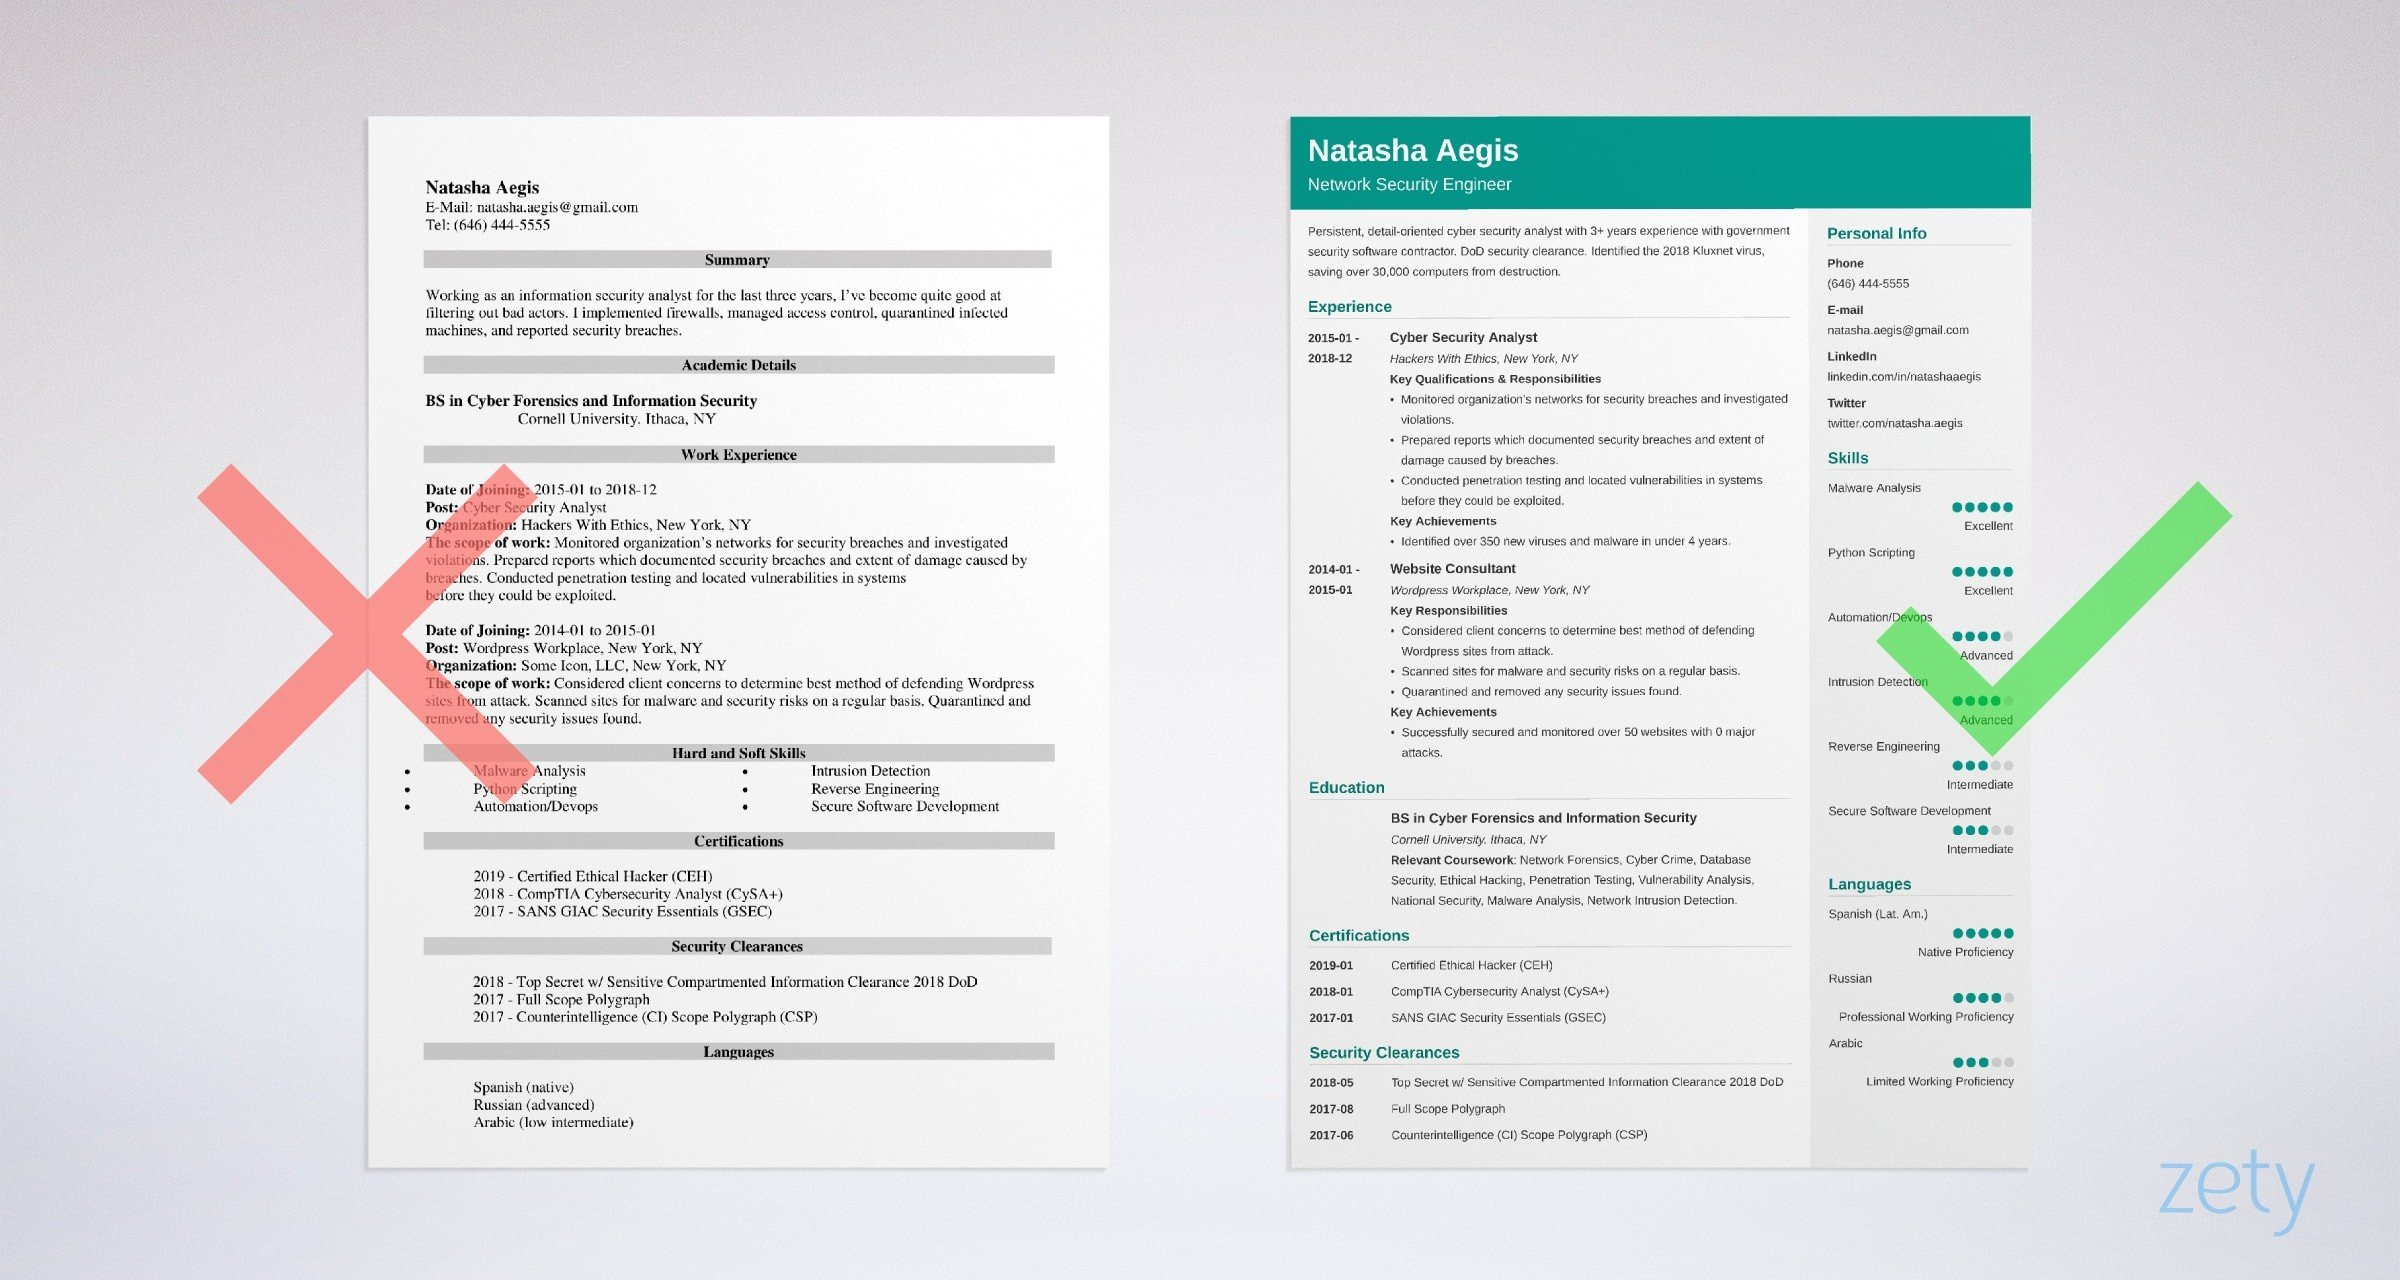 cyber security resume sample also for entry level analysts identity and access management Resume Identity And Access Management Resume Examples